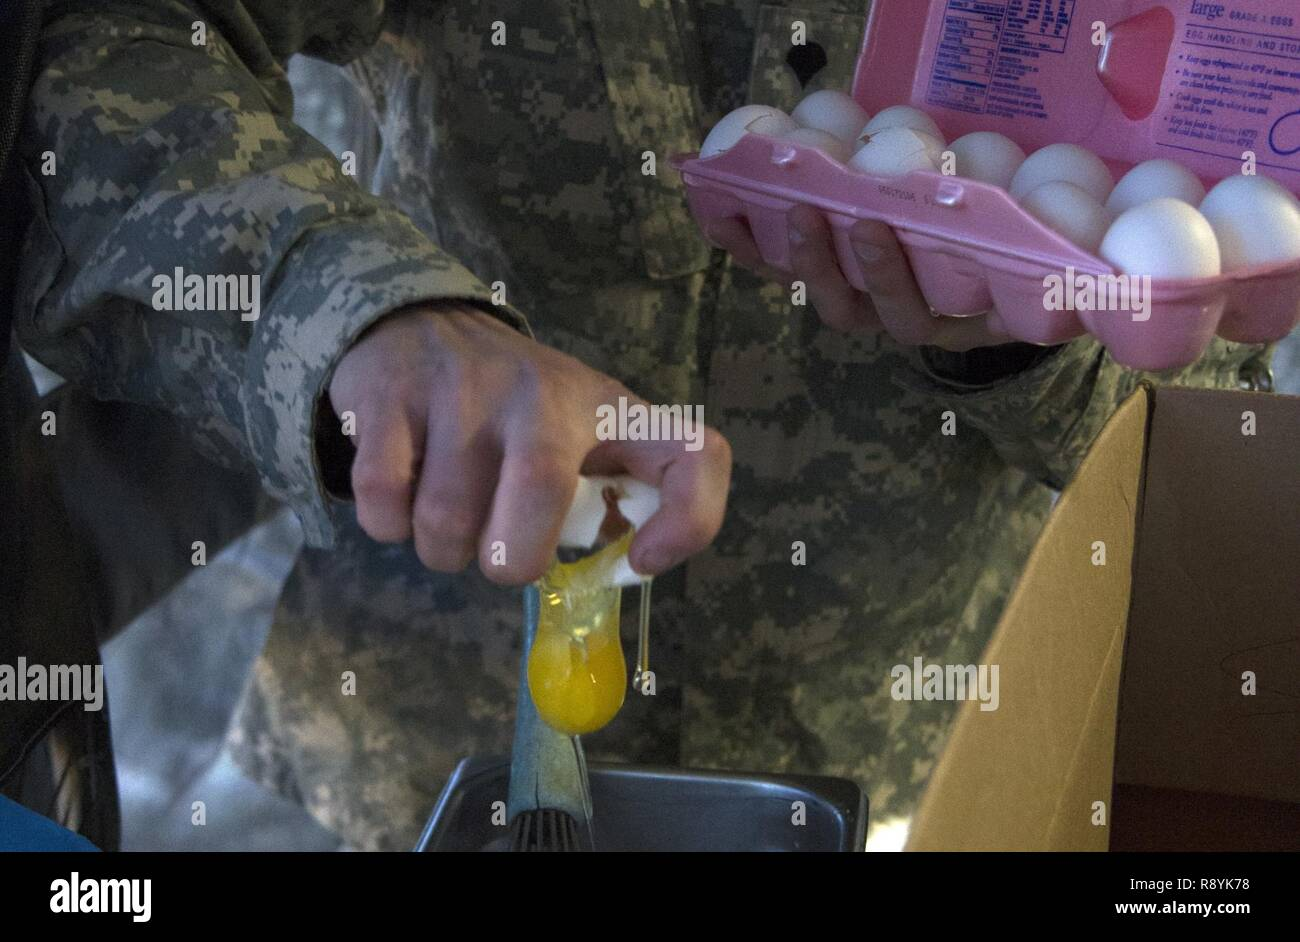 A U.S. Army Reserve Soldier from the culinary team of the 391st Military Police Battalion, breaks eggs in order to prepare crepes during food service operations in the field as part of the 49th Philip A. Connelly Award for Excellence in Army Food Service competition at Camp Blanding, Florida, March 17, 2017. The 391st MP Bn., one of four Army-wide finalists, selected Camp Blanding, Florida, as their location for the final level of testing in the competition. - Stock Image